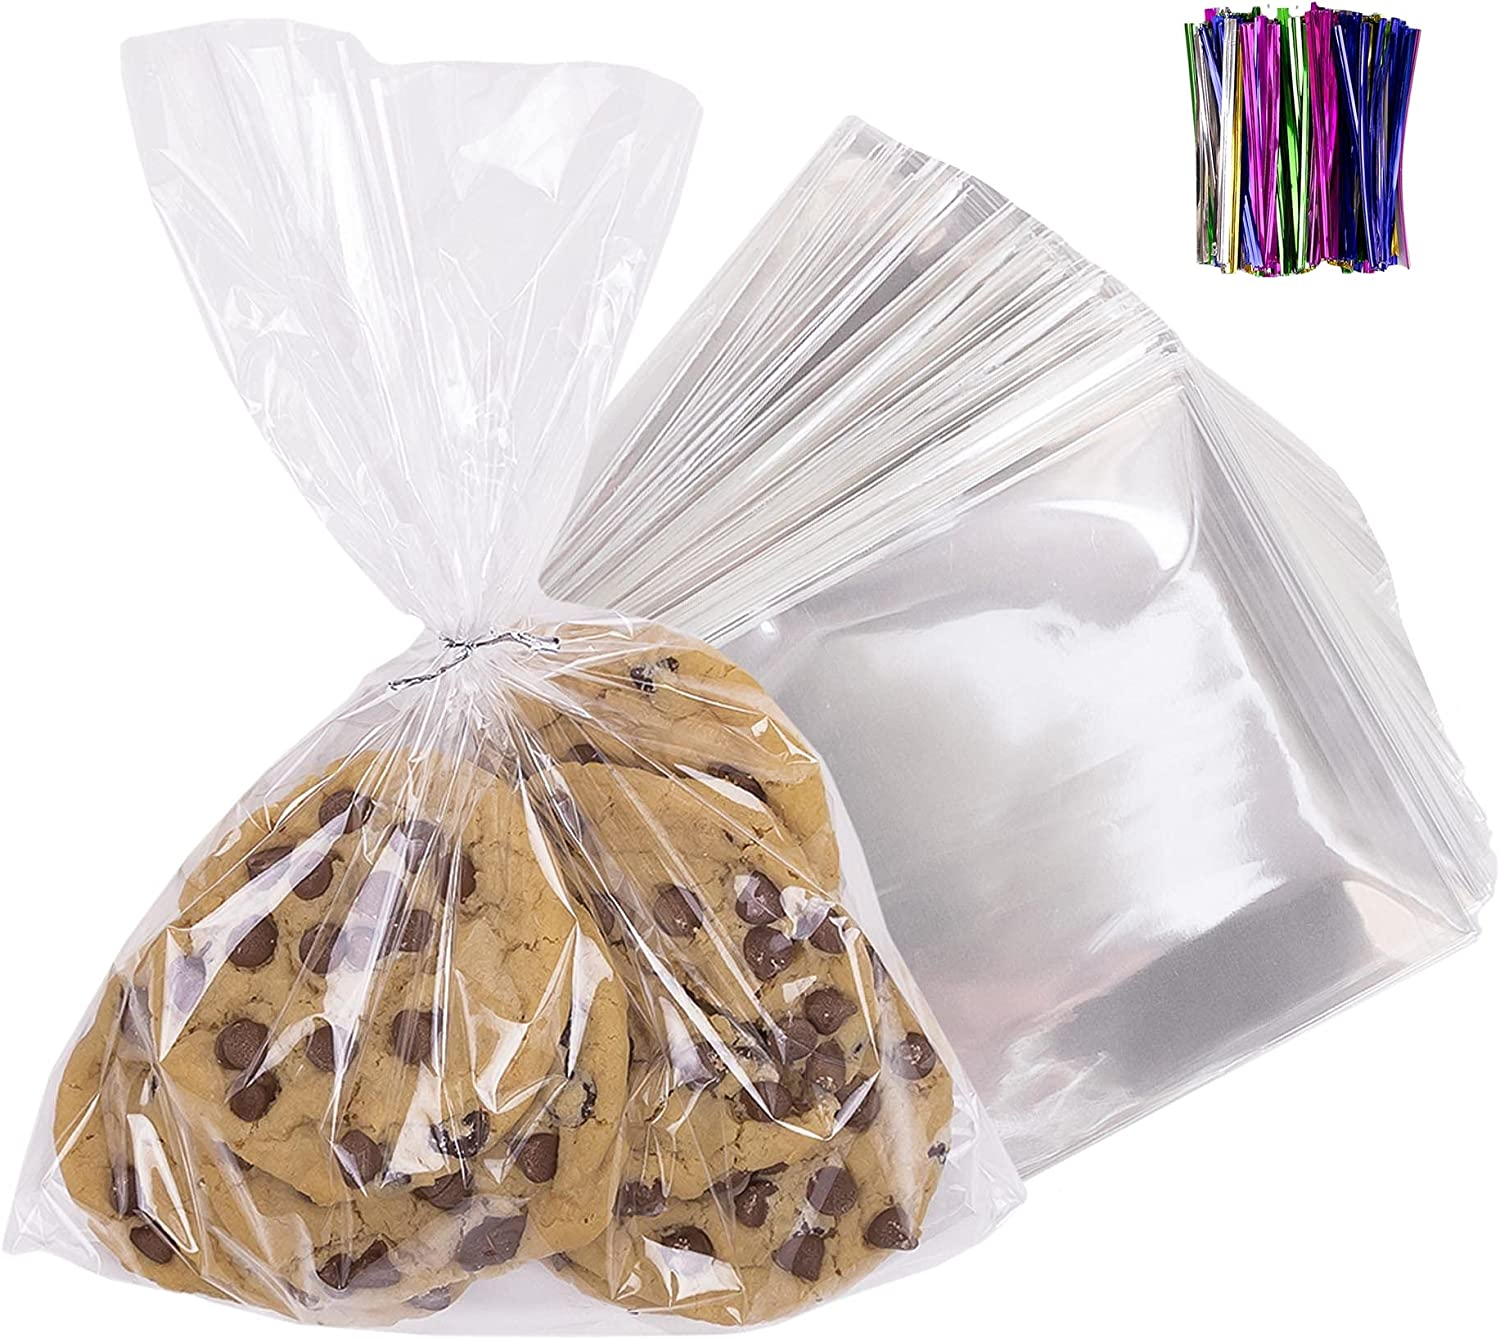 200 Pcs 9x12 Clear Flat Cello/Cellophane Treat Bags for Gift Wrapping, Bakery, Cookie, Candies, Dessert, Party Favors Packaging, with Color Twist Ties! : Everything Else